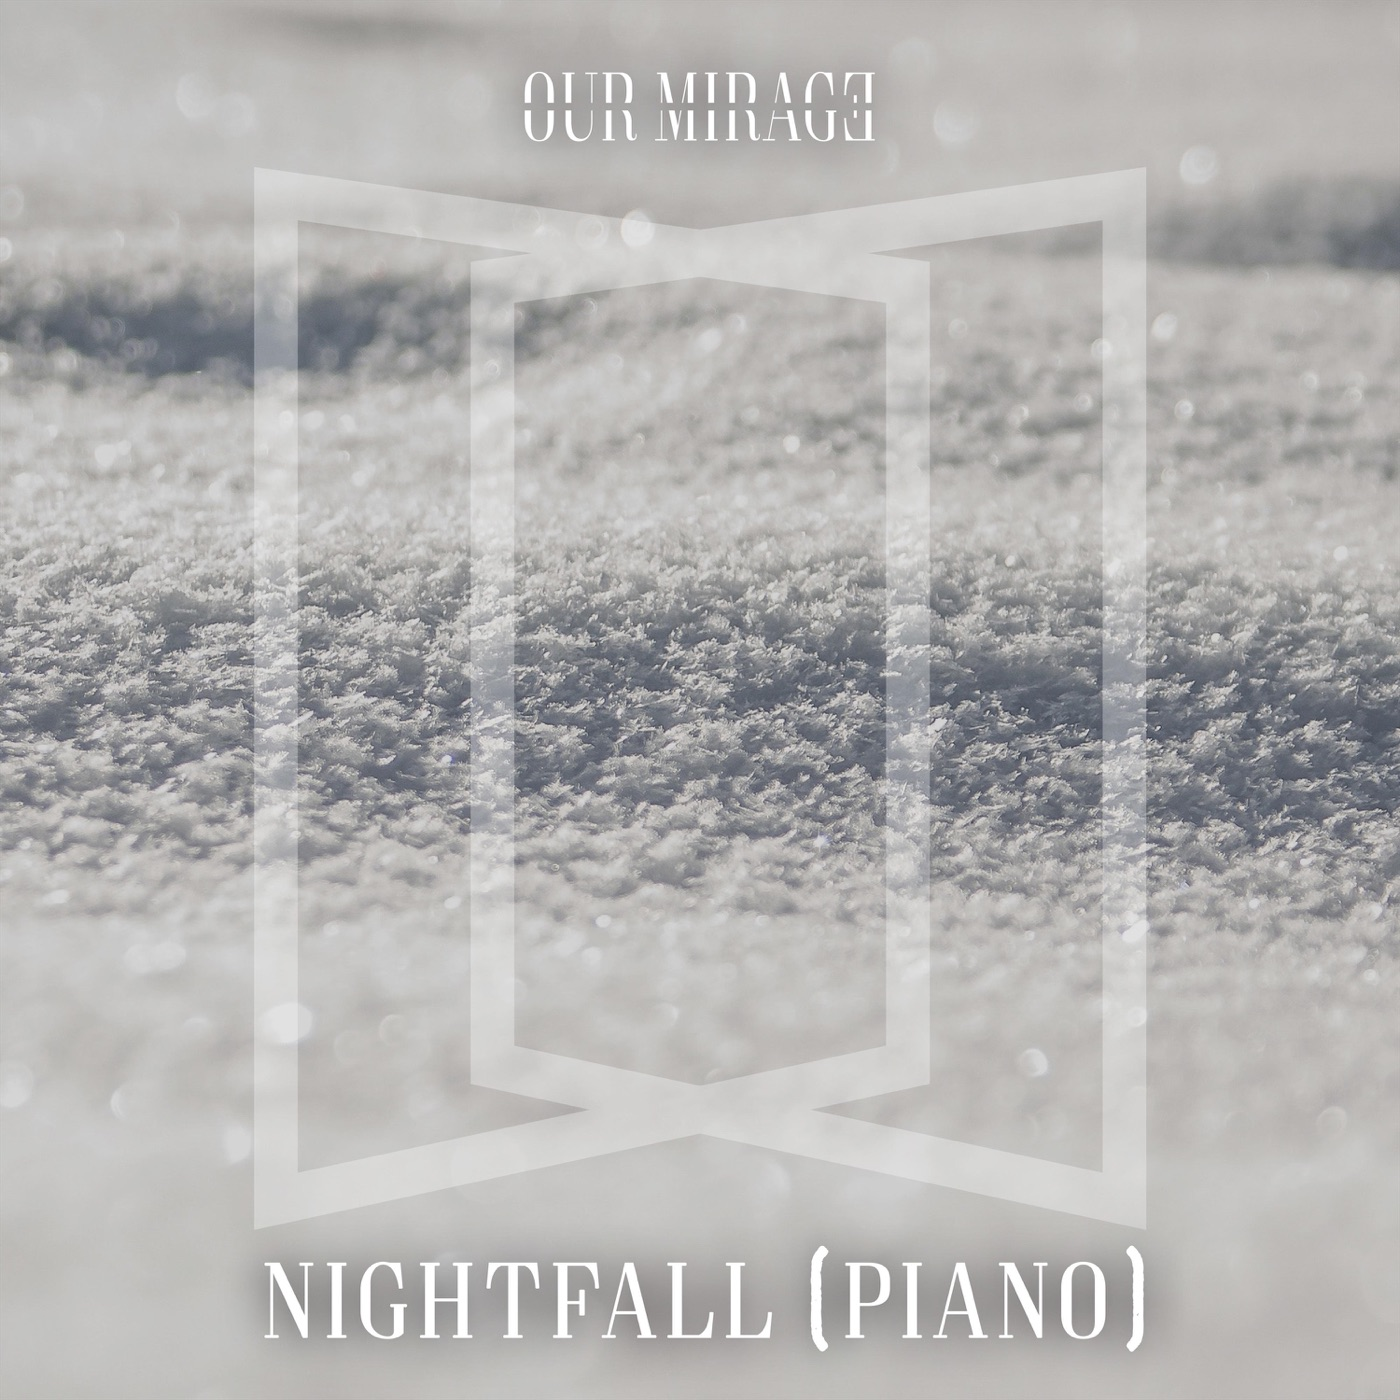 Our Mirage - Nightfall (Piano) [single] (2018)